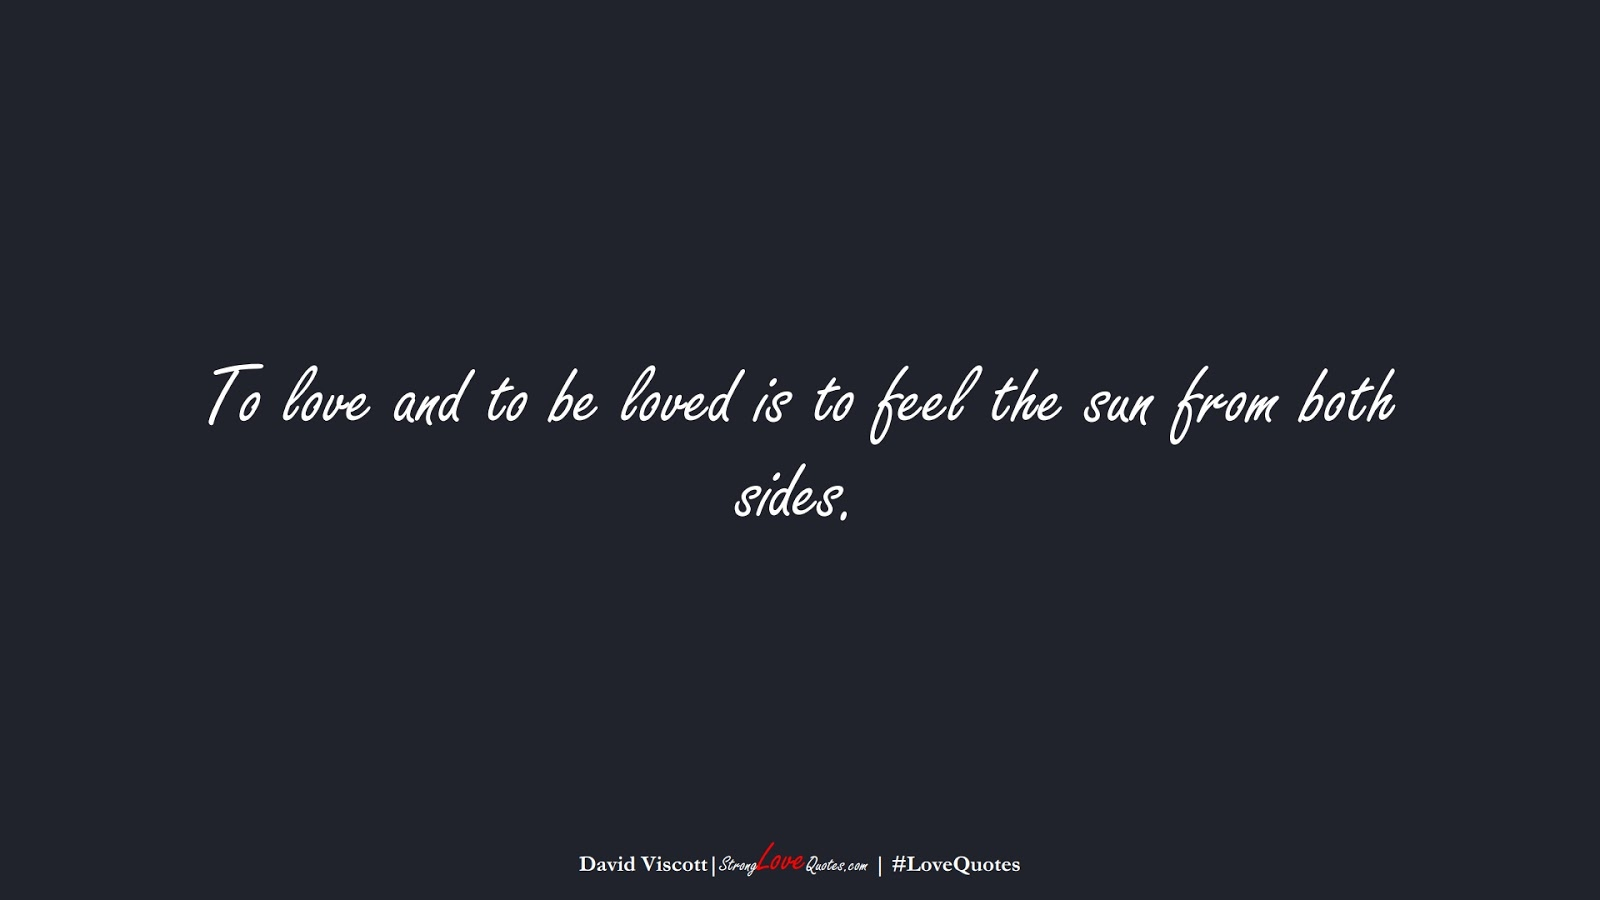 To love and to be loved is to feel the sun from both sides. (David Viscott);  #LoveQuotes